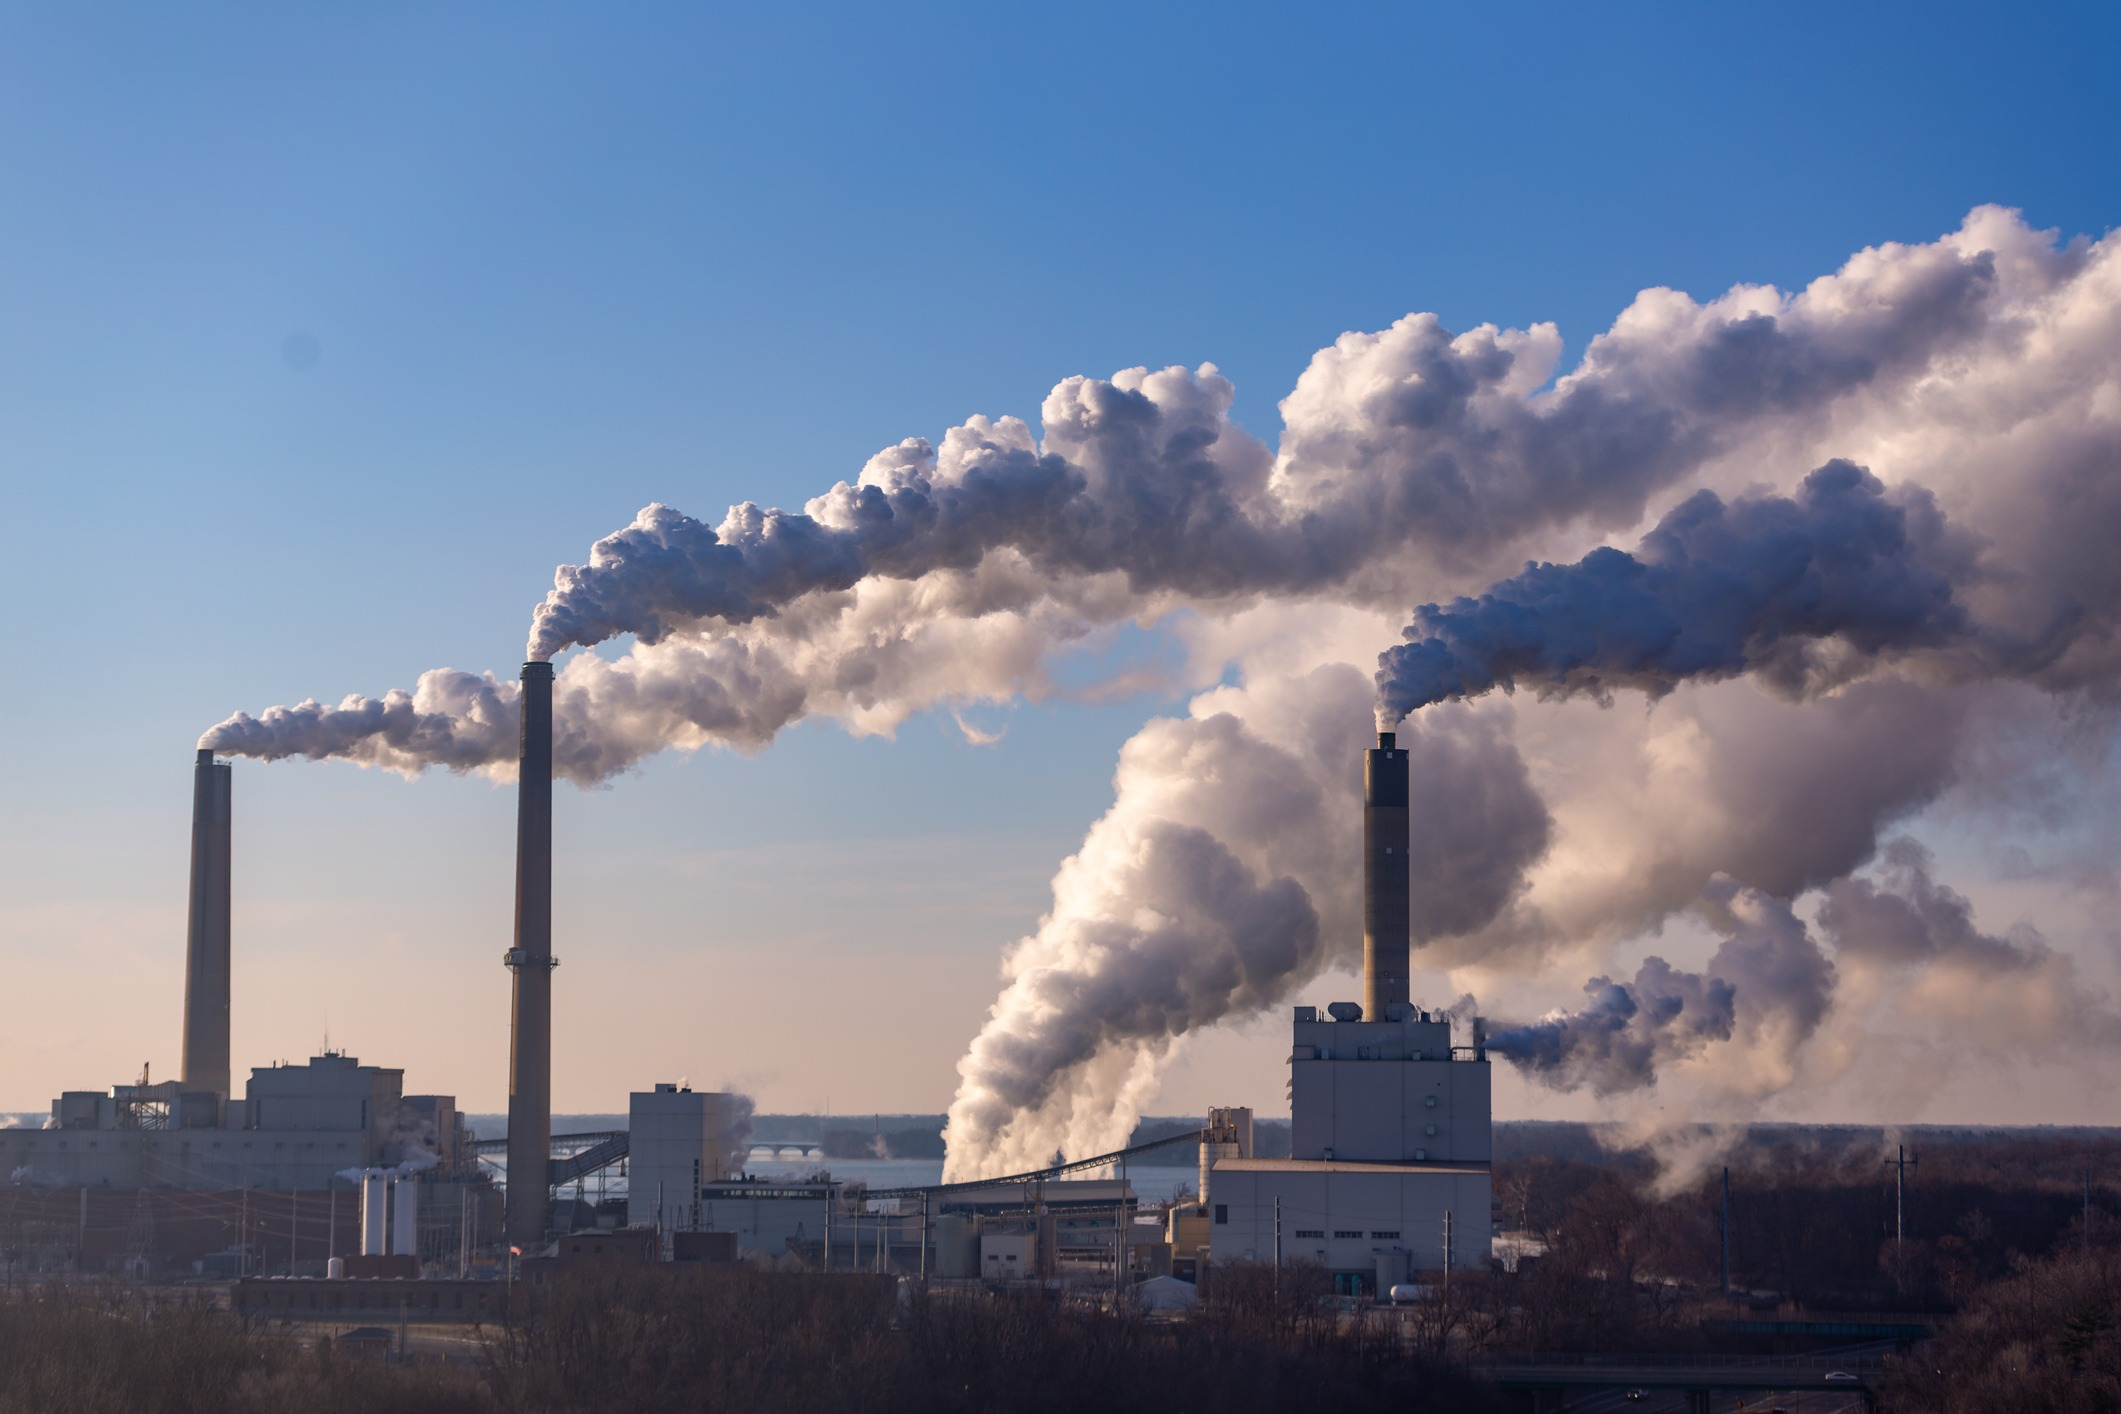 The Coal Industry Is Unstable and Moving Toward Obsolescence